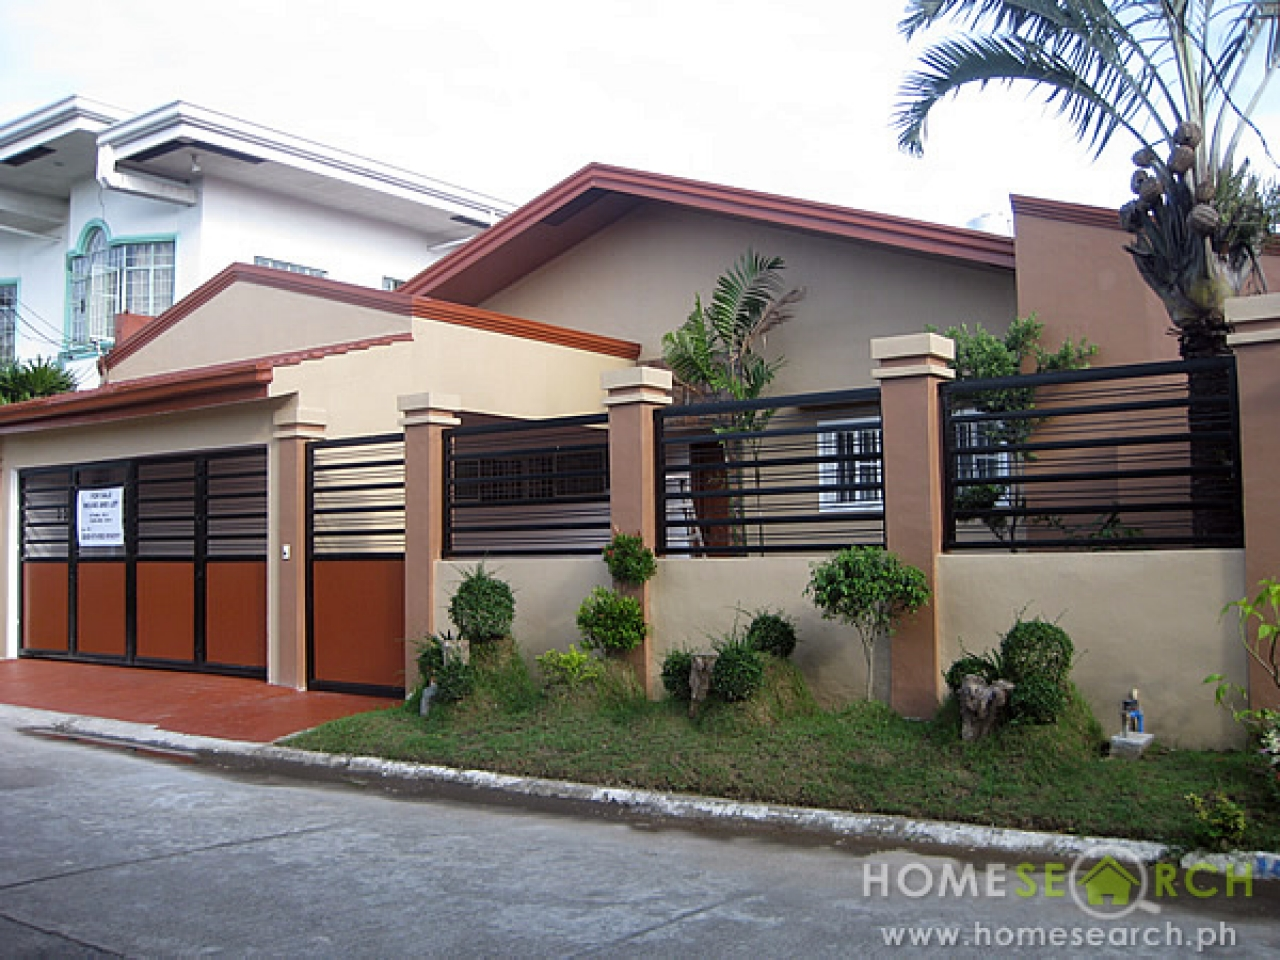 Simple bungalow house design philippines philippine for Bungalow home decor